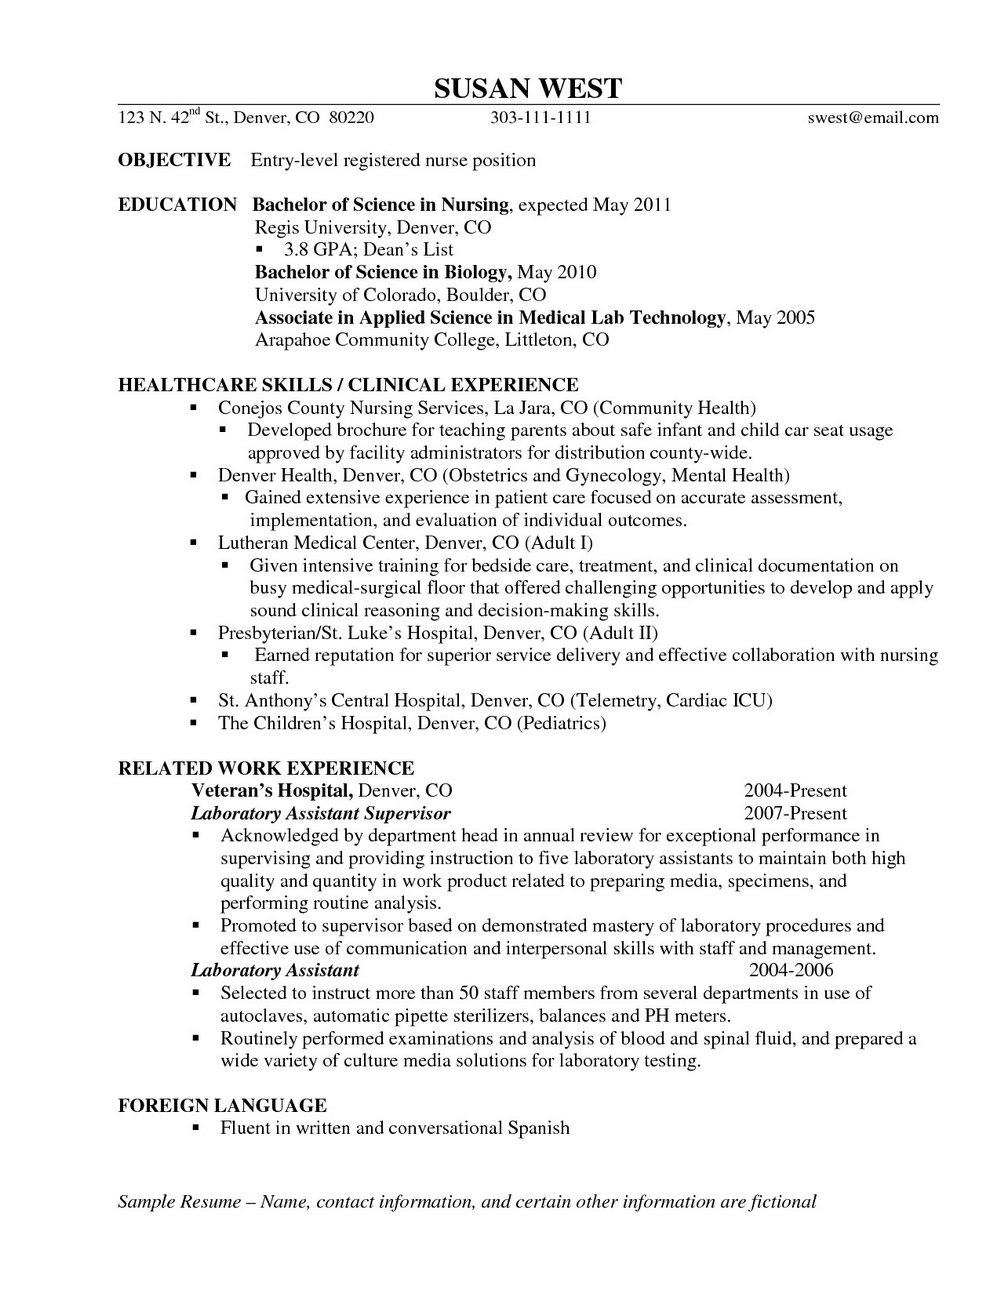 Resume Objective For Rn Position